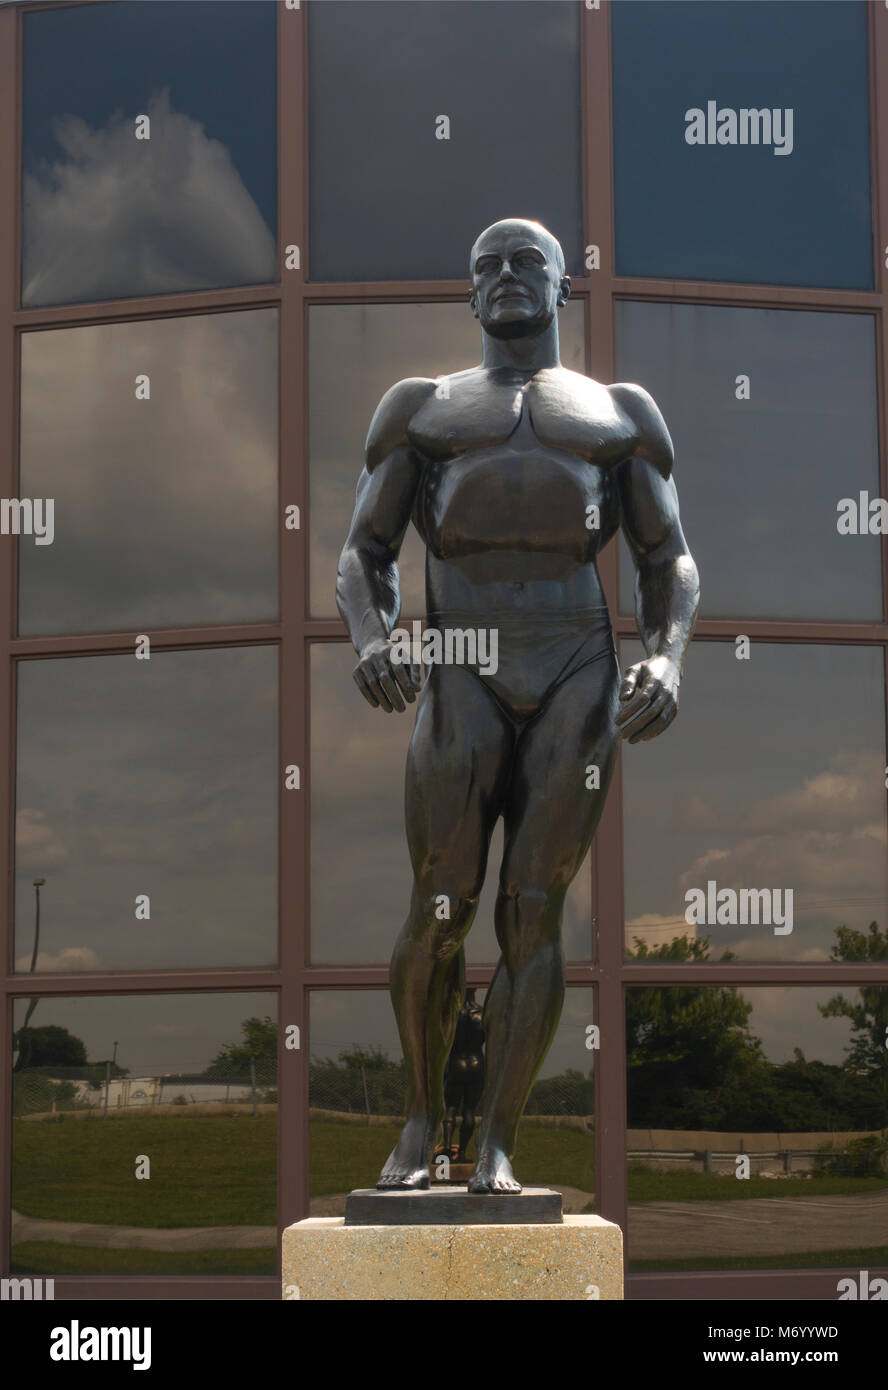 York Barbell weightlifting hall of fame in York PA - Stock Image